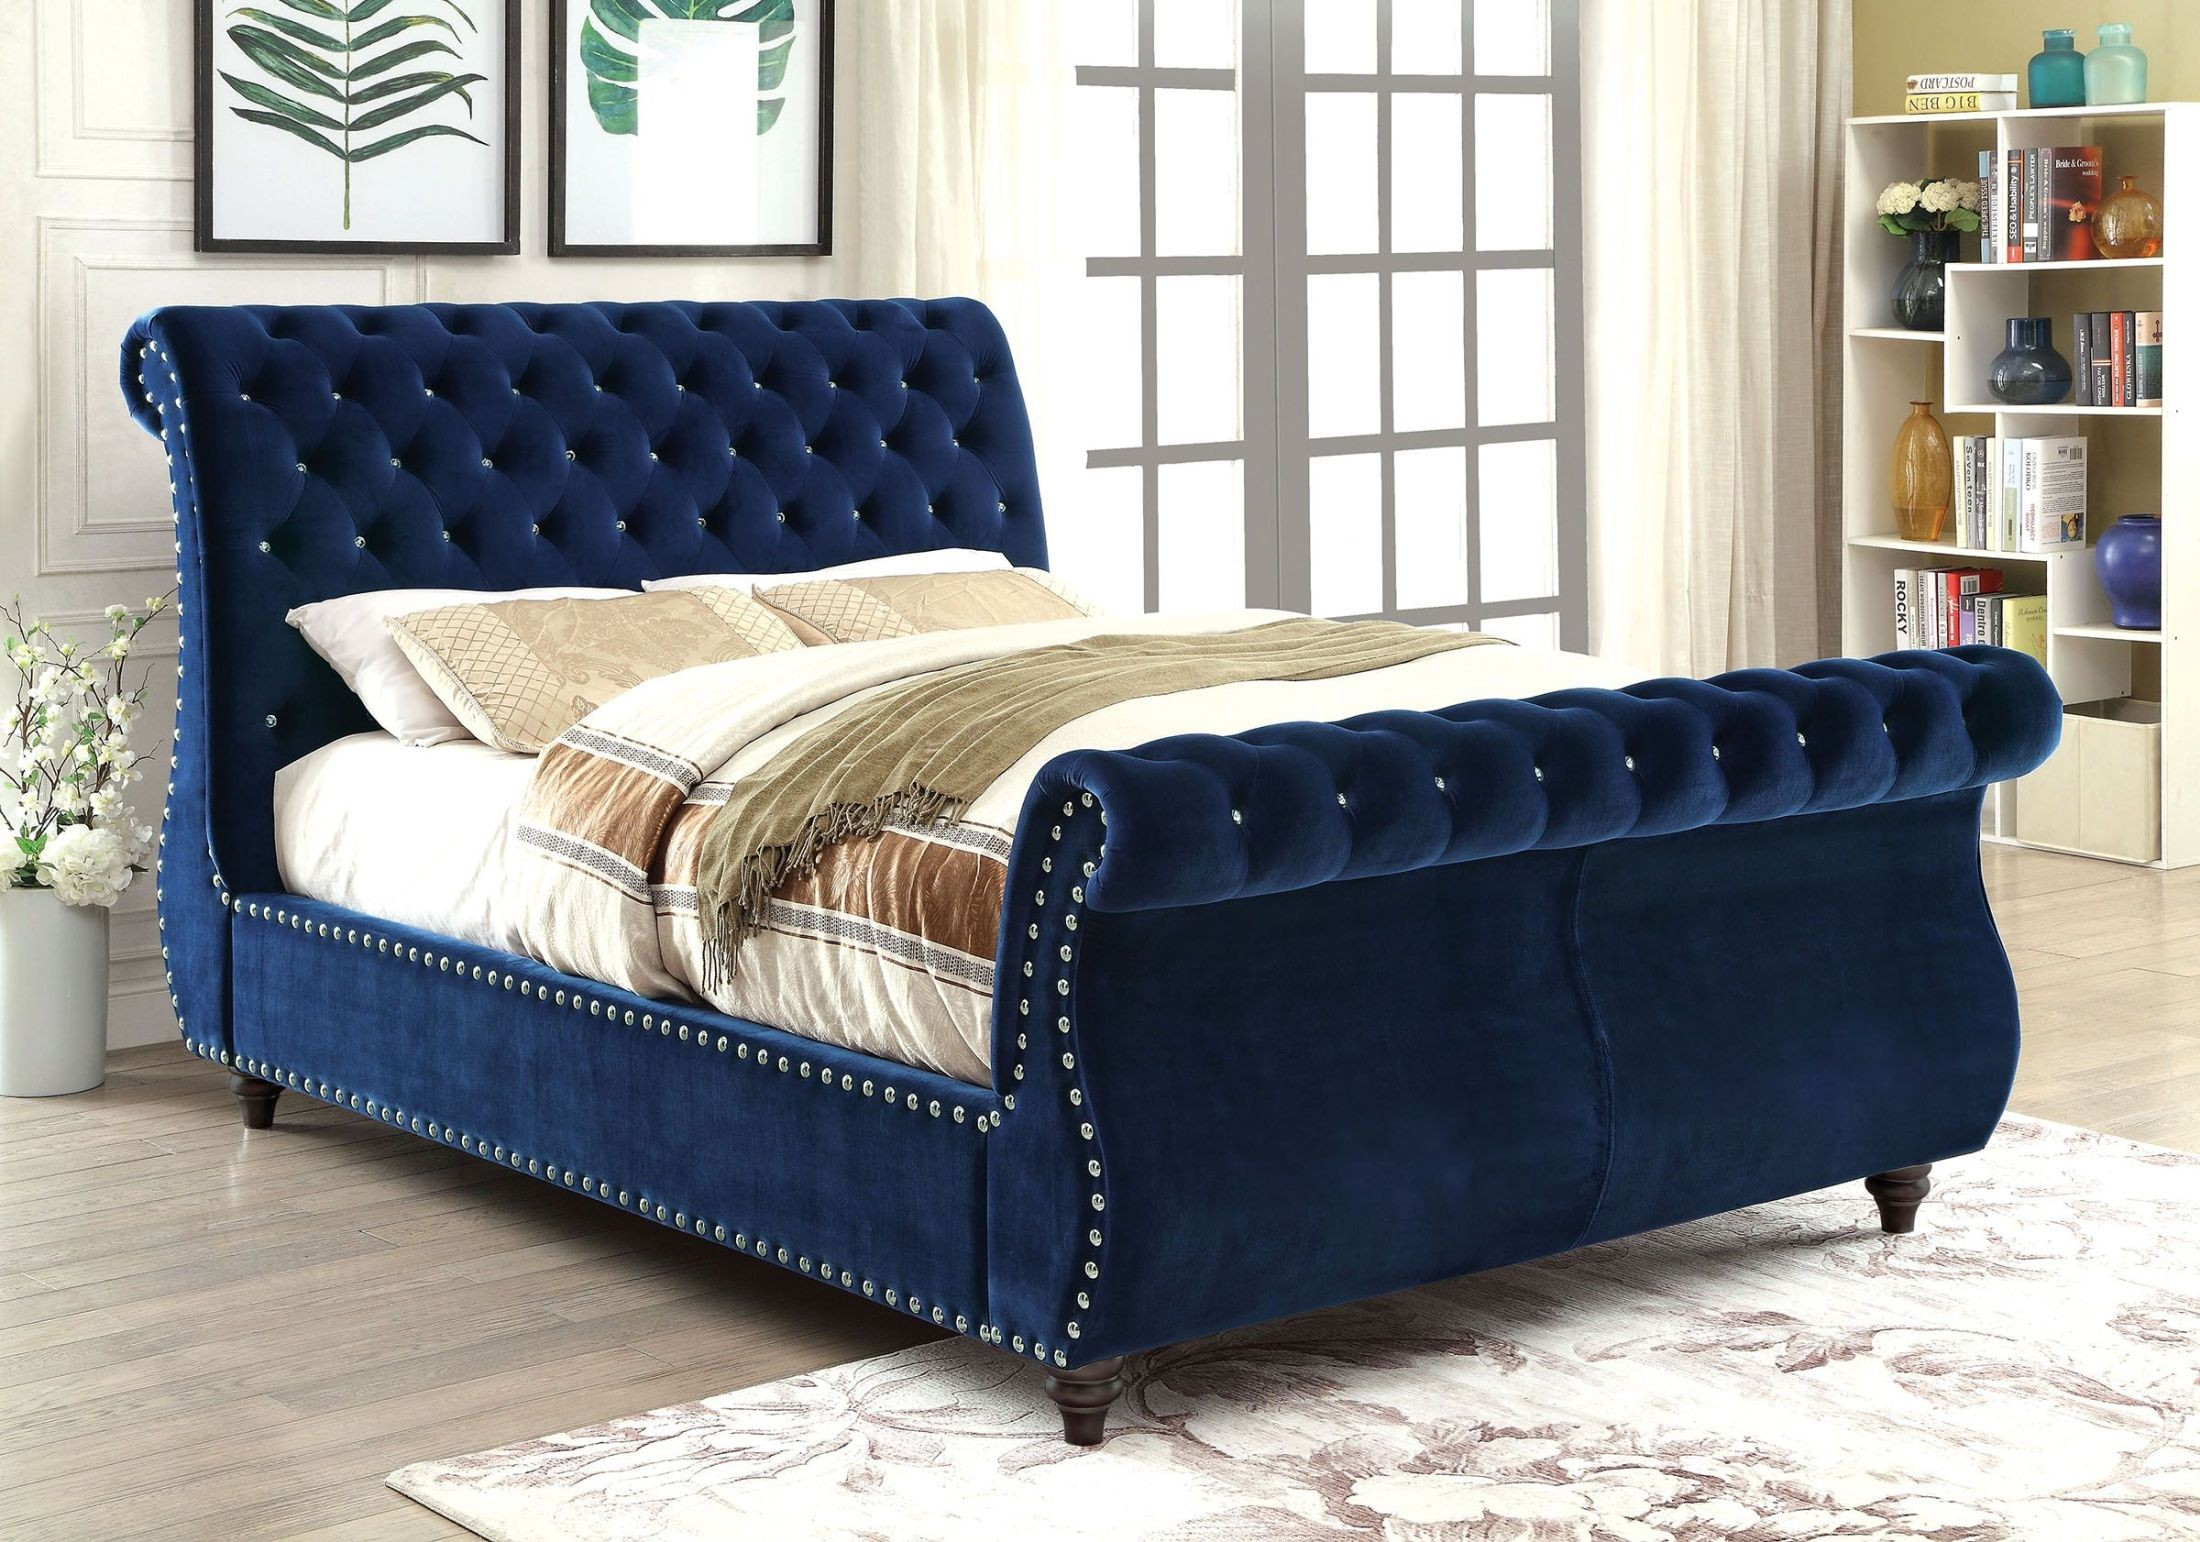 Noella Navy Queen Upholstered Sleigh Bed Cm7128nv Q